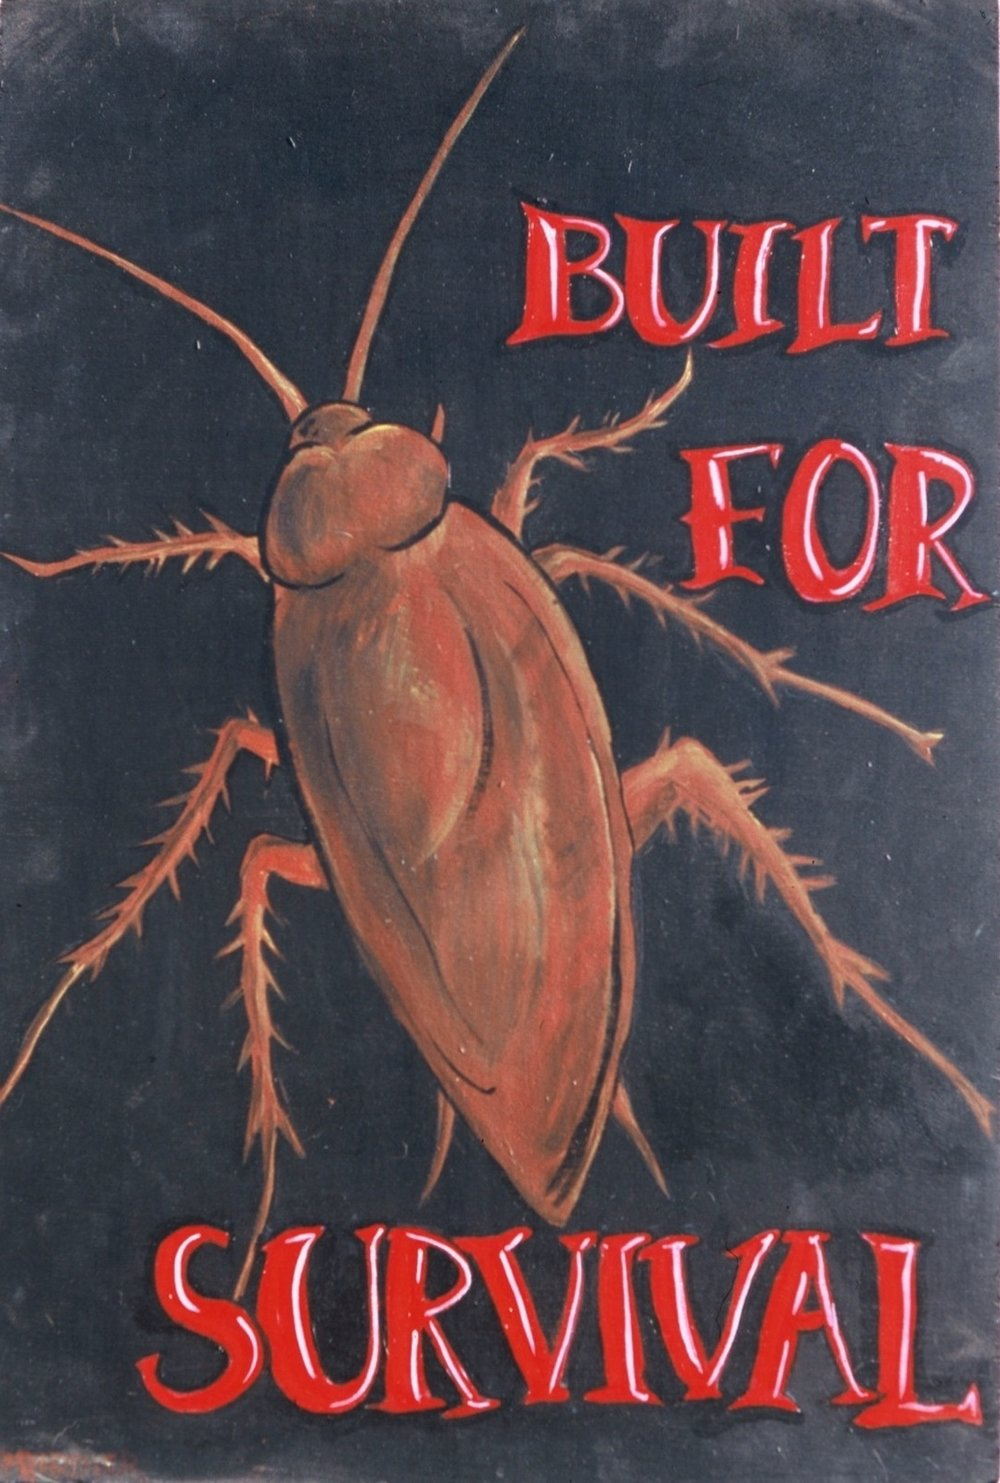 Cockroach Spirit Animal_by Cooper Lee Bombardier.jpg